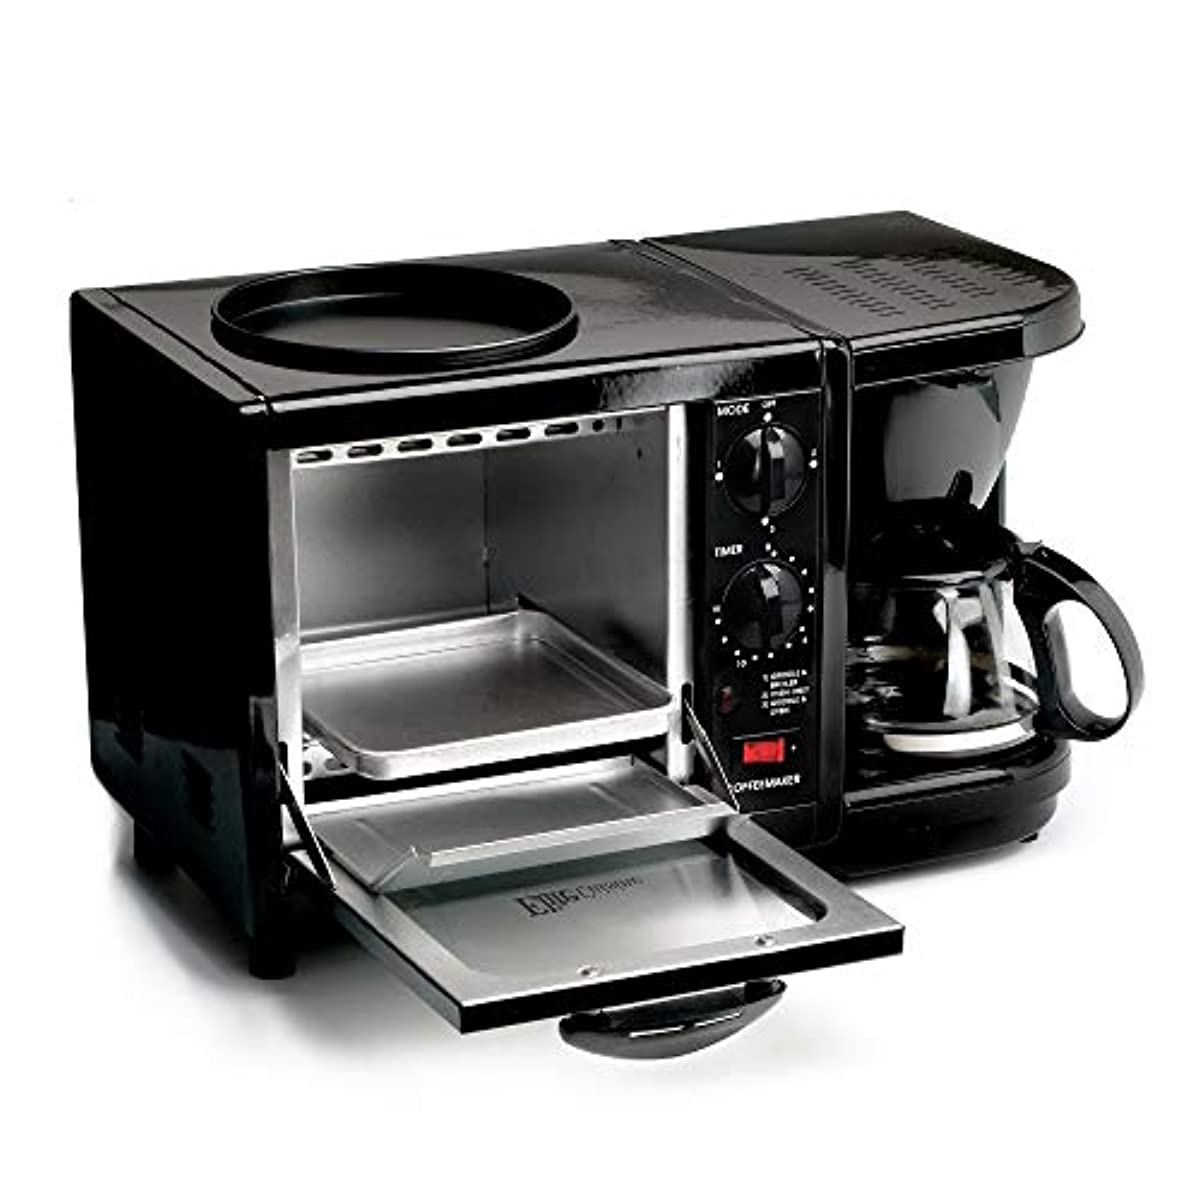 Elite Cuisine Ebk 200b Maxi Matic 3 In 1 Multifunction